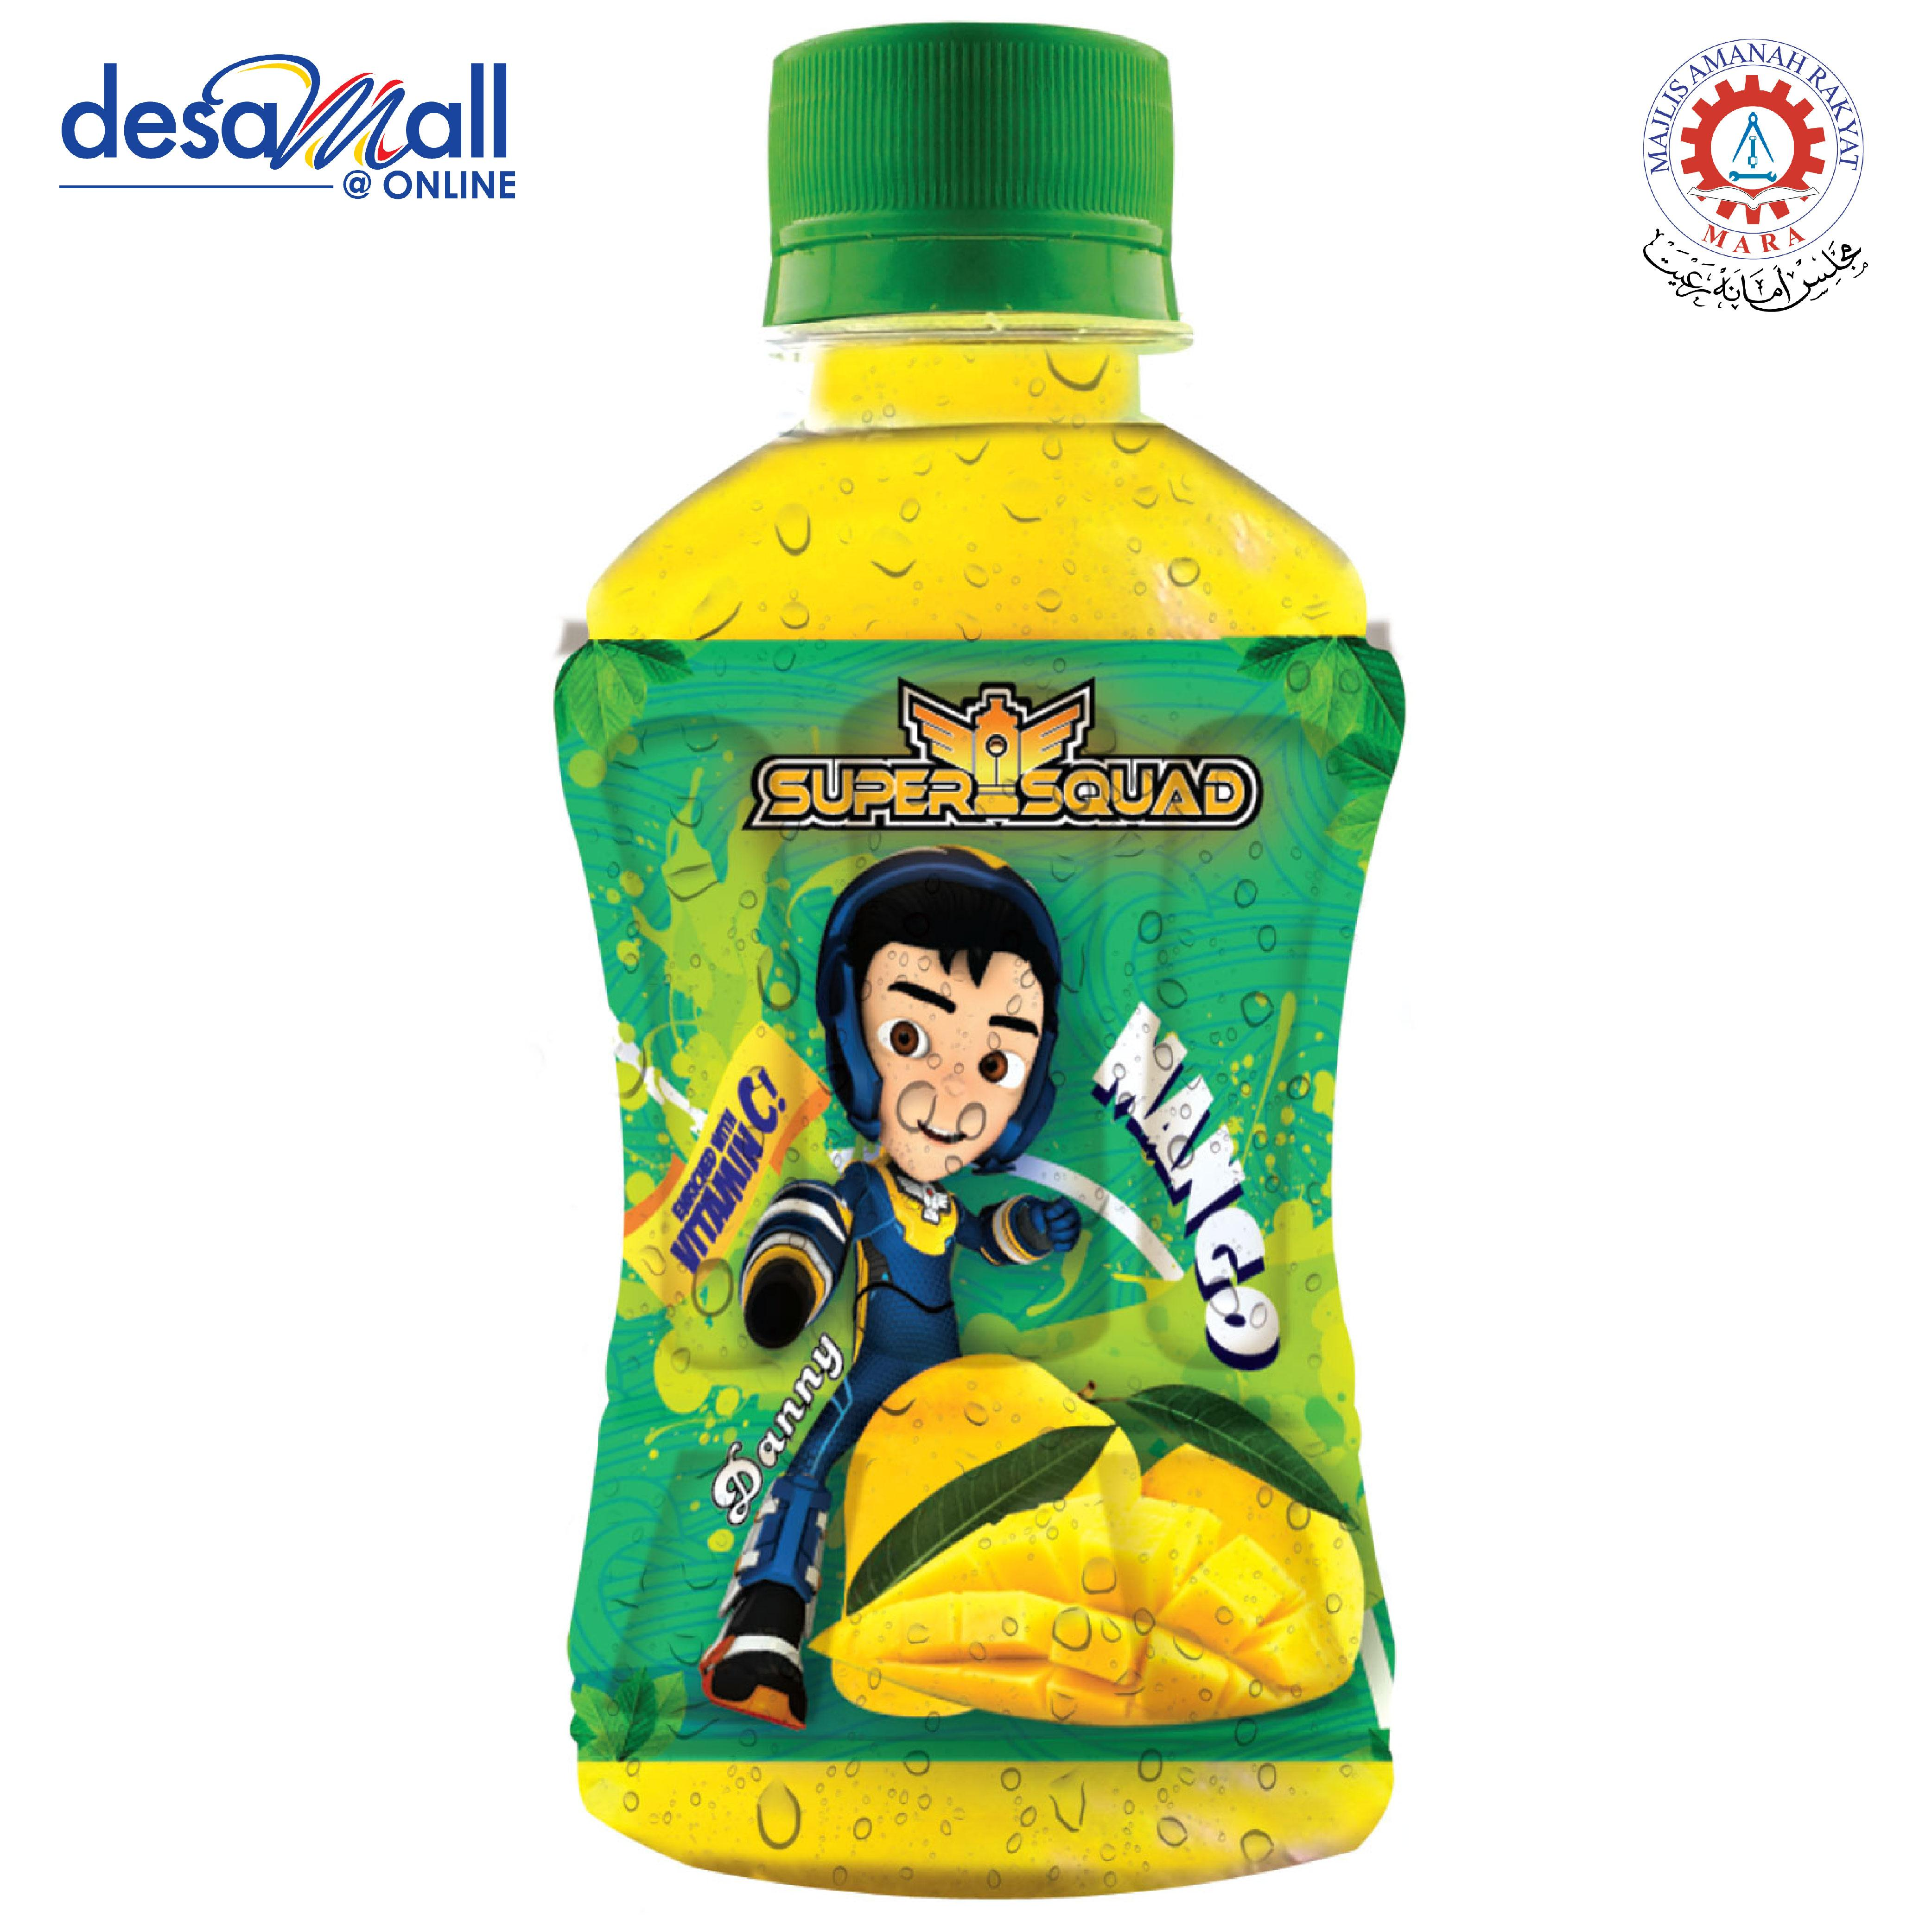 Kincirmas Supersquad Mango (280 ml)